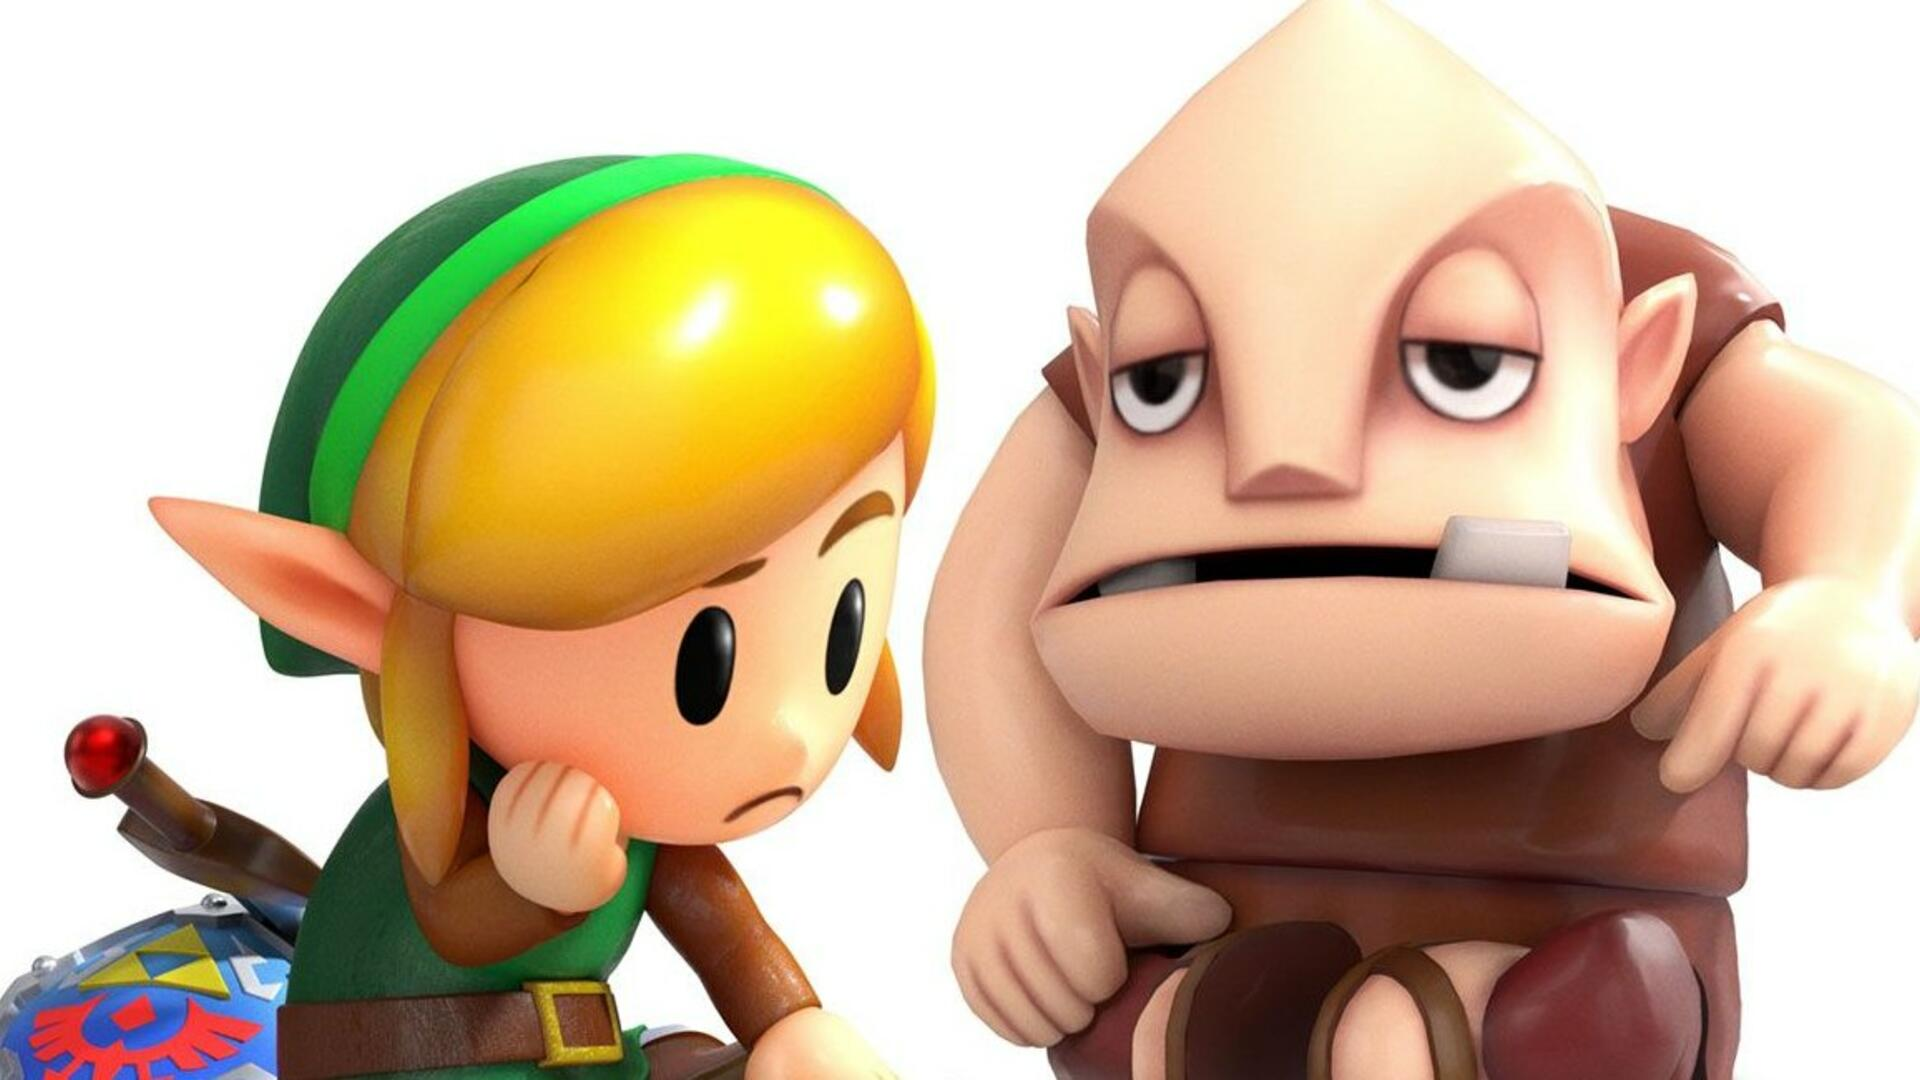 Link's Awakening's Dungeon Creator Came From Brainstorming What a Zelda Maker Might Look Like